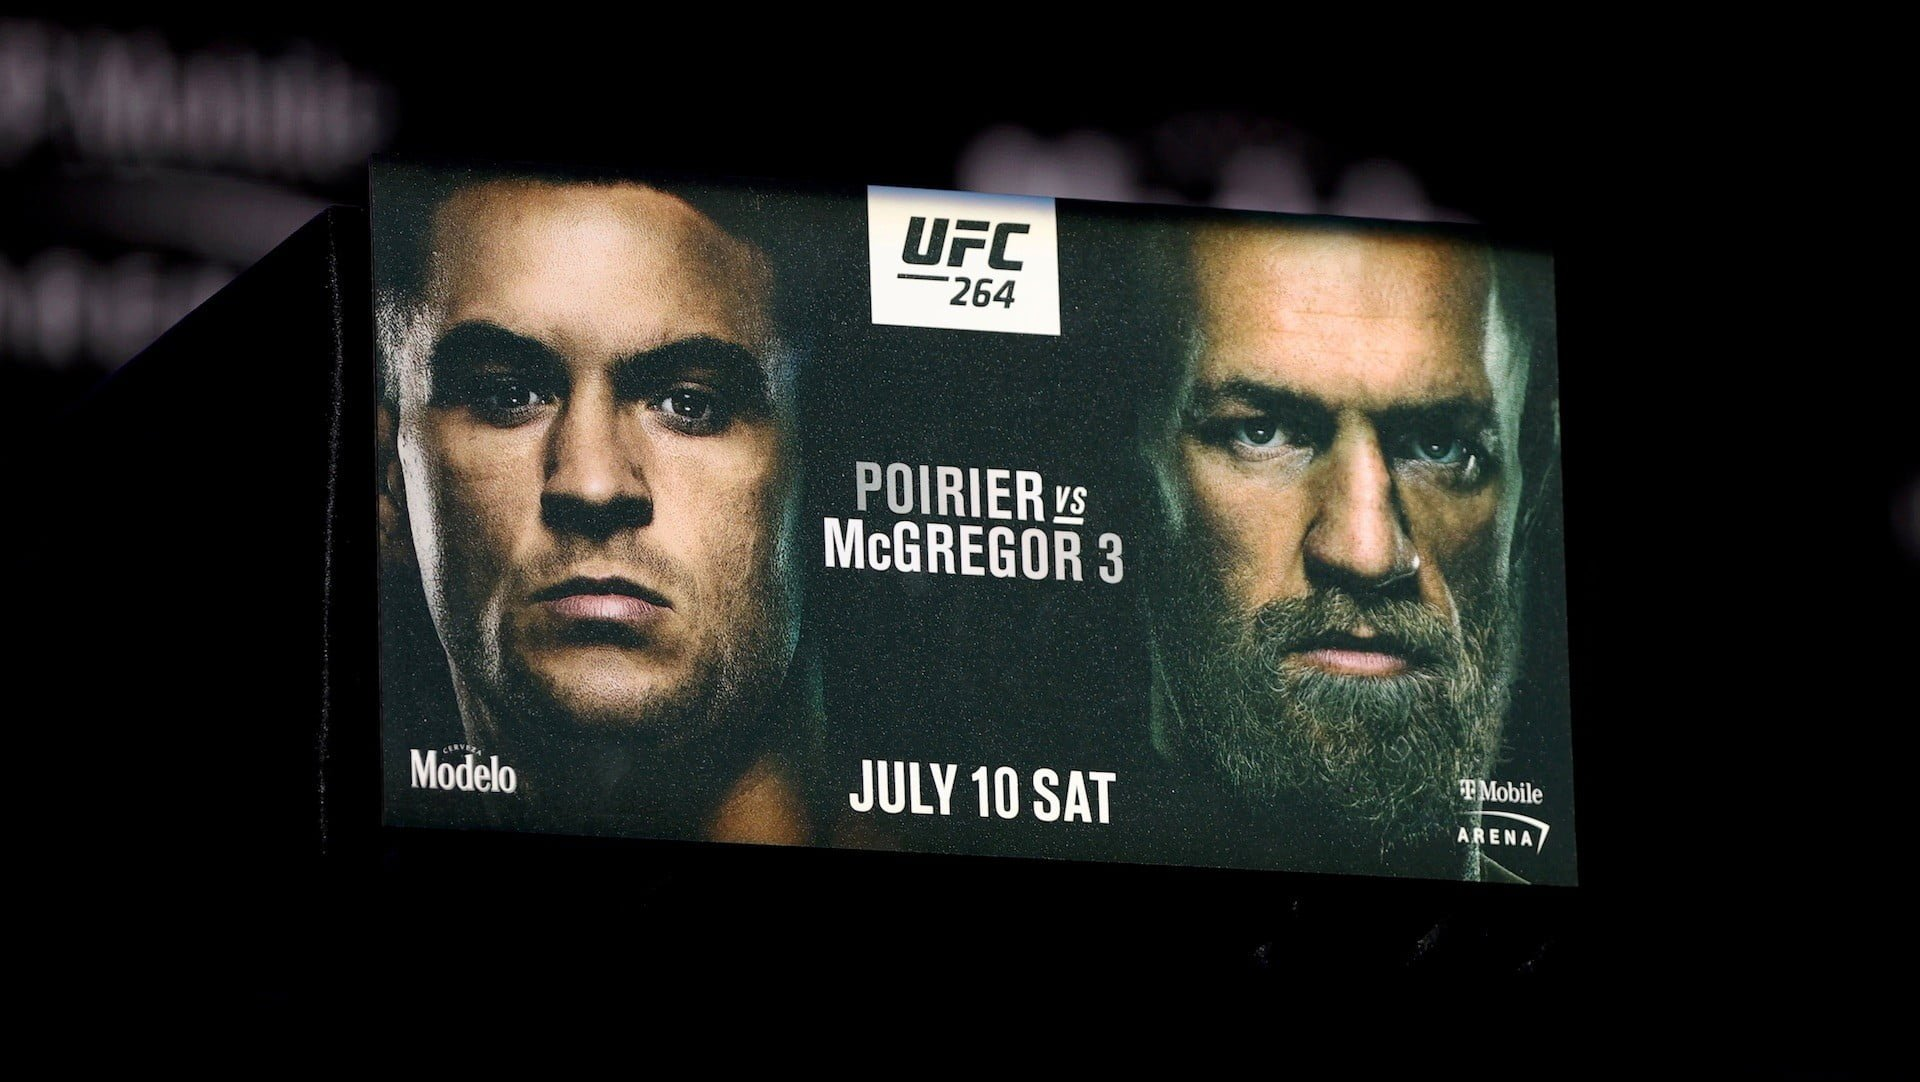 UFC 264 PPV Price: How Much Does Poirier vs. McGregor 3 Cost? | The Manual